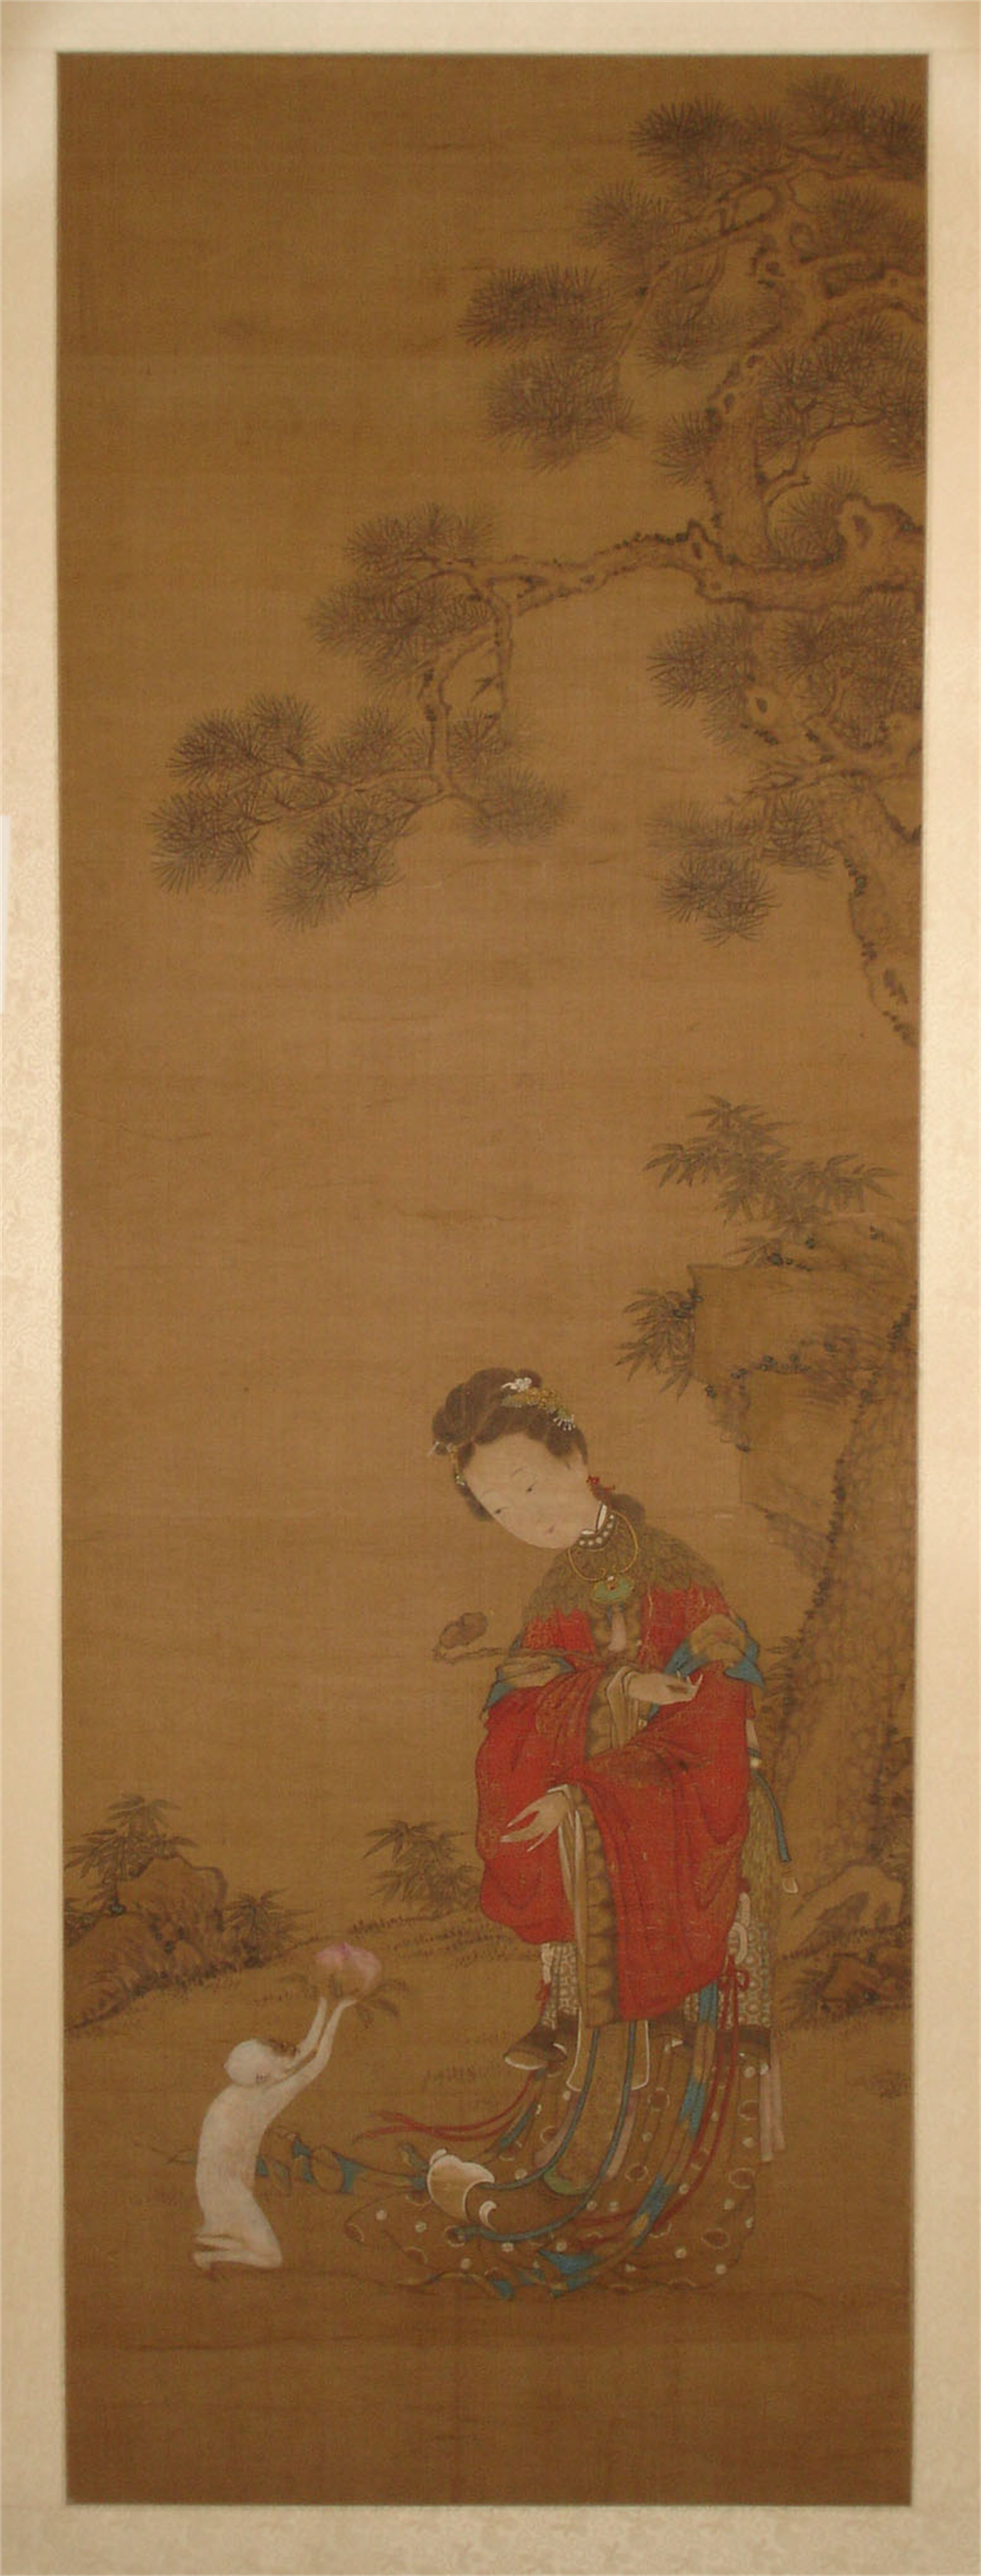 CHINESE SILK PAINTING OF A MONKEY OFFERING A PEACH TO A LADY